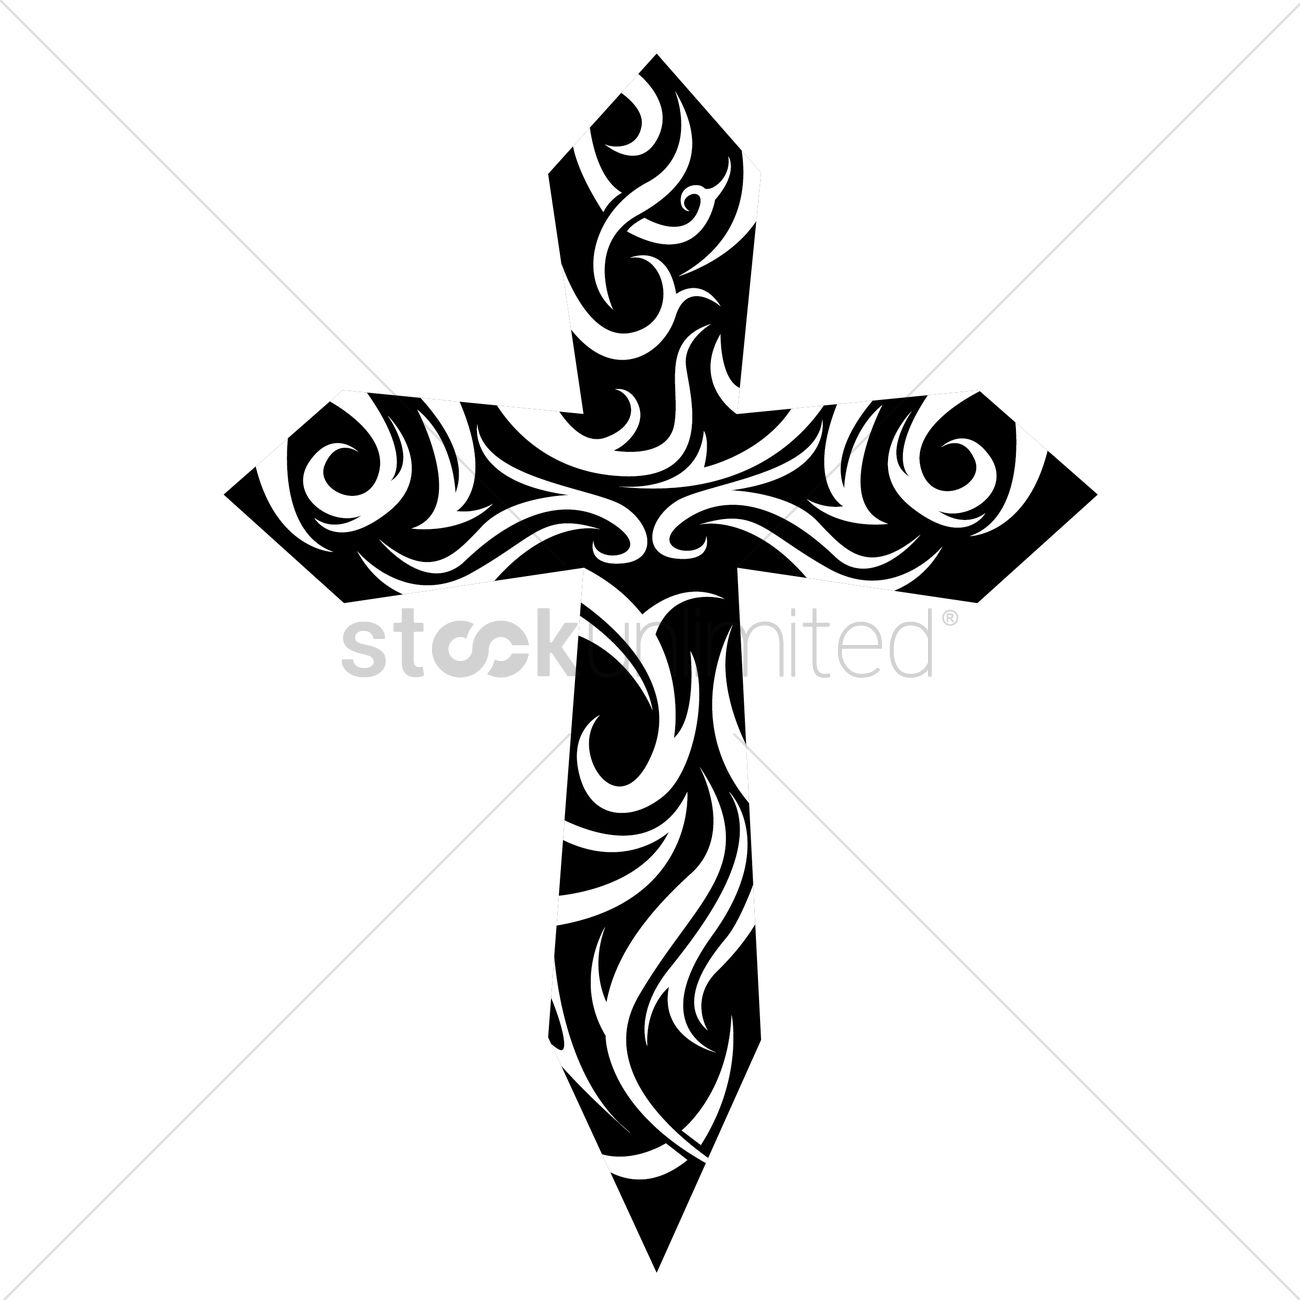 Tribal Cross Tattoo Vector Image  1524206  Stockunlimited